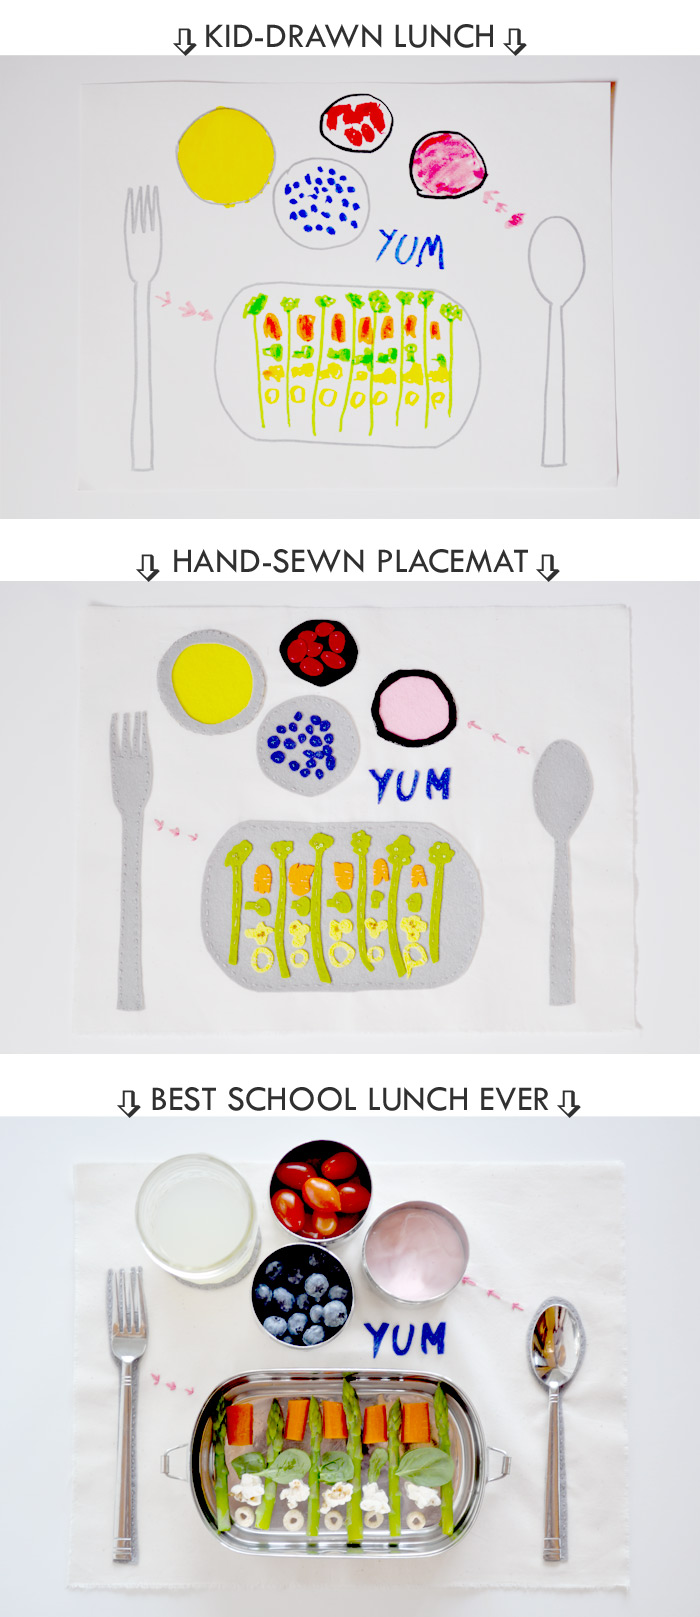 Lunch-Made-Fun---School-Pla